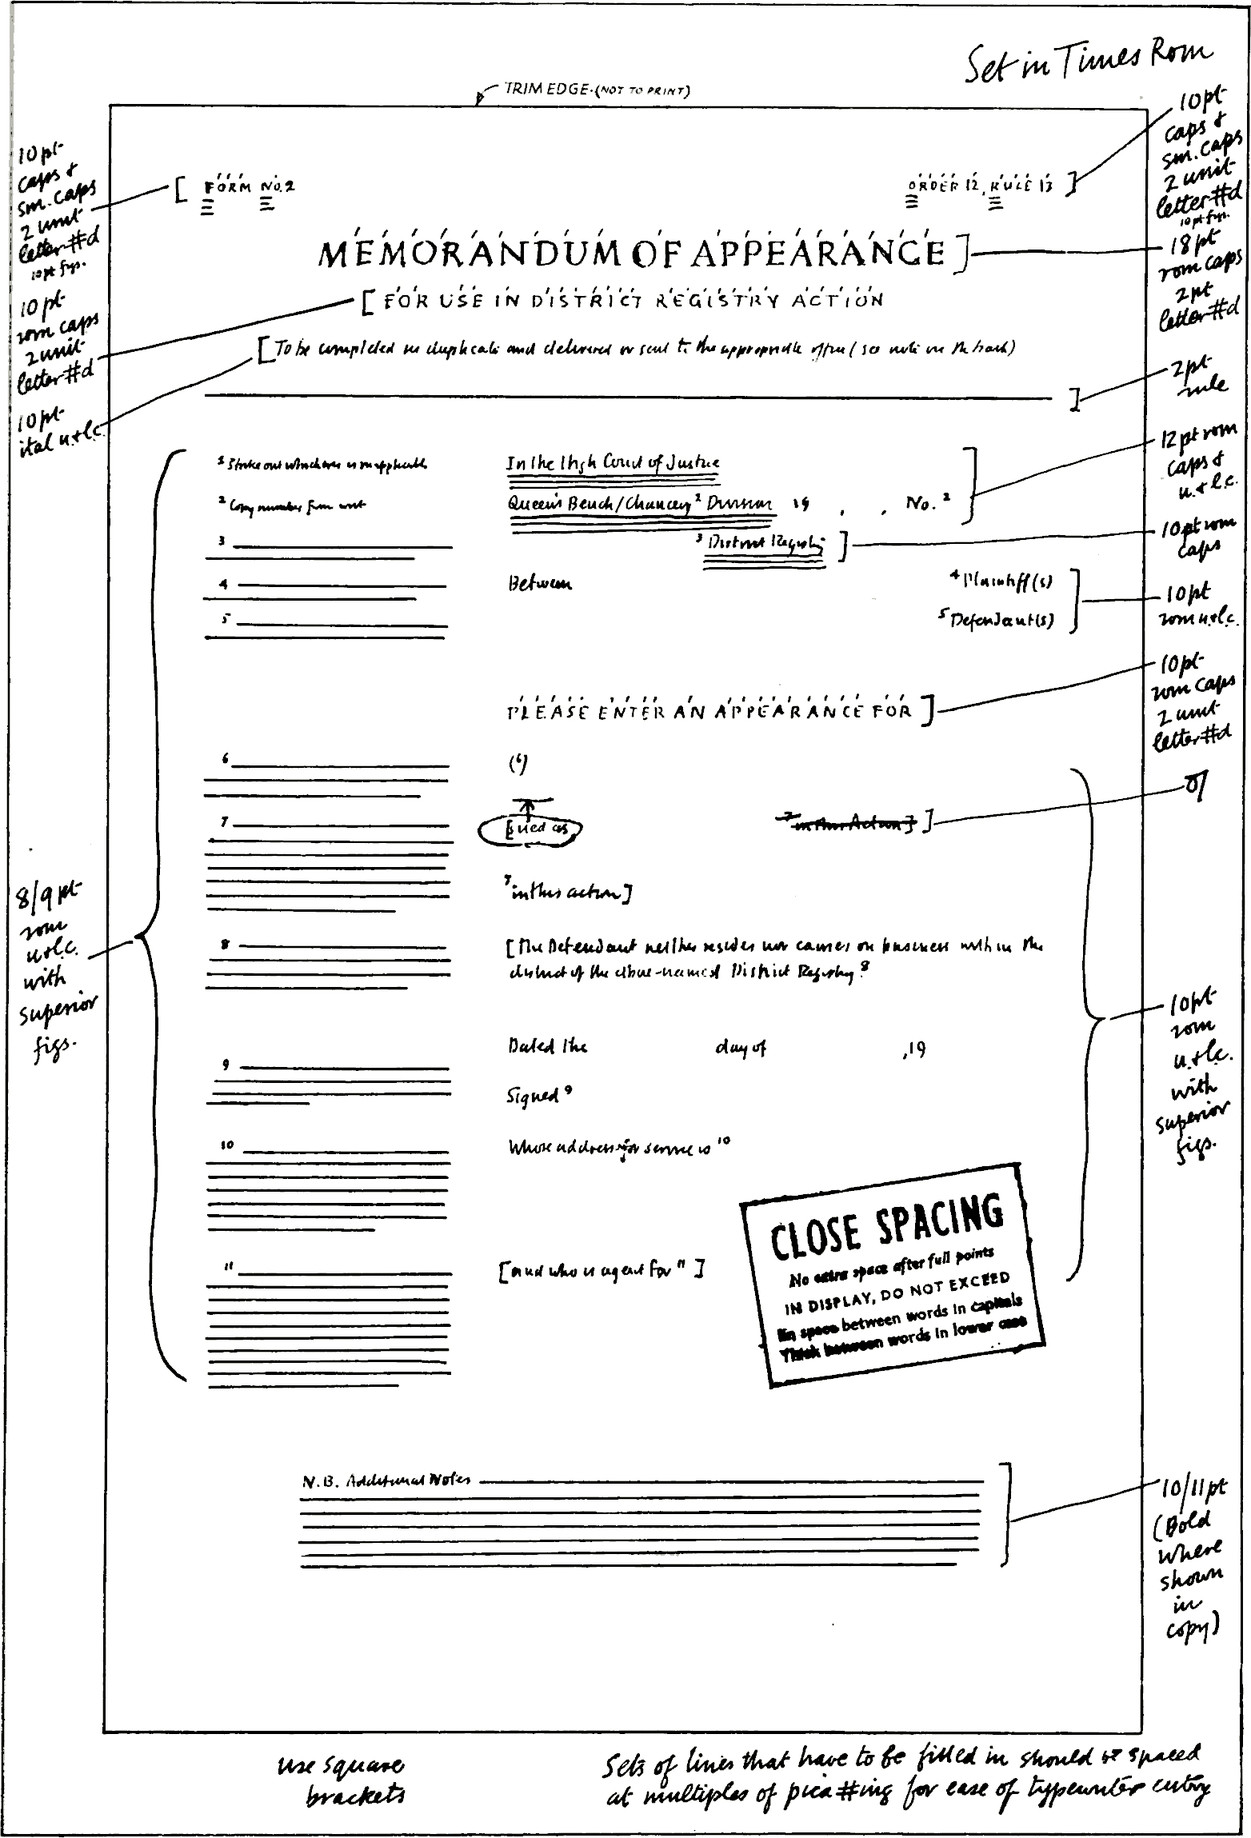 Instructions for the printer, for example: Set in times new roman. Indicators for each piece of text has the size of font, for example 10pt caps & sm.caps. Stamp reads: CLOSE SPACING. No extra space after full points. IN DISPLAY, DO NOT EXCEED. Big space between words in capitals. Thin between words in lowercase. Foot notes read: Use square brackets. Sets of lines that have to be filled in should be spaced at multiples of pica#ing for case of typewriter entry.